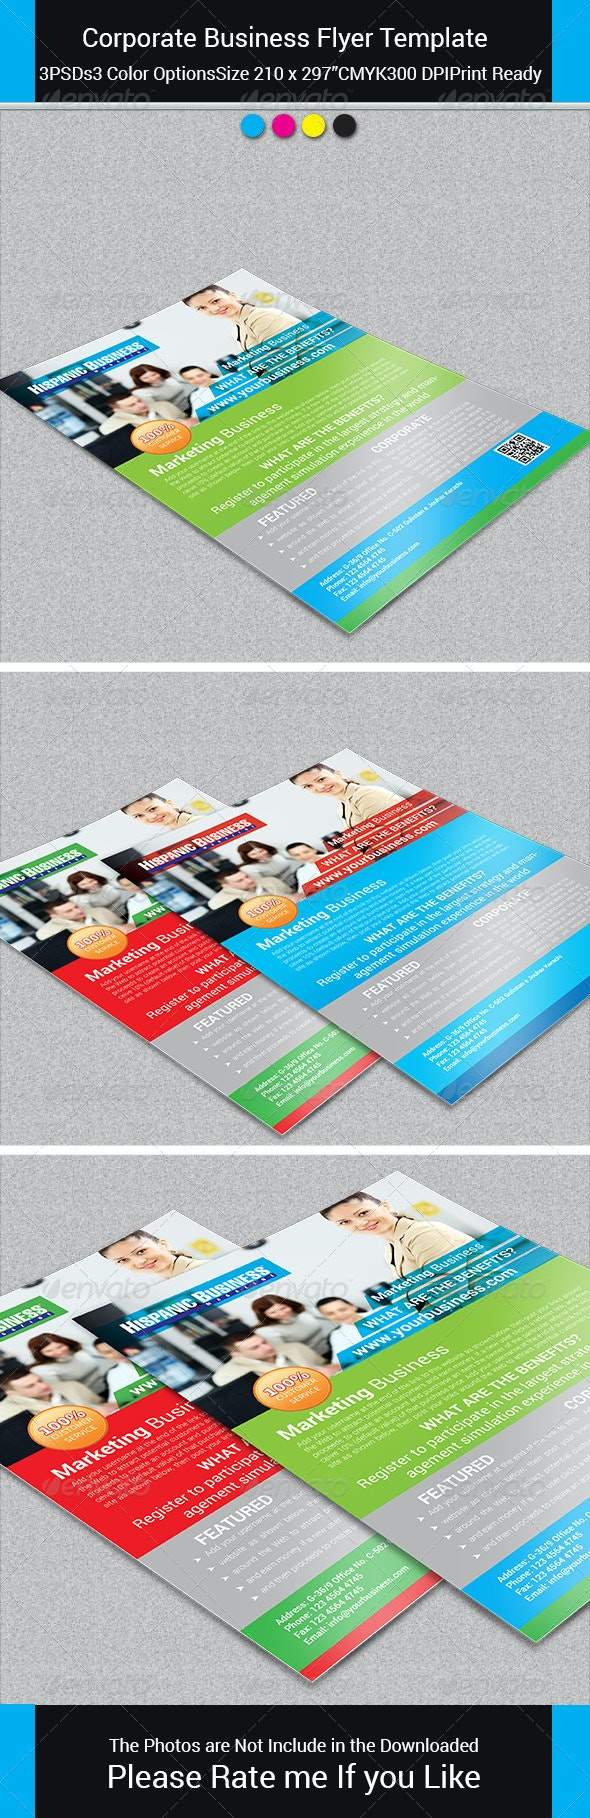 Corporate Business Flyer Template vol-25 - Corporate Flyers